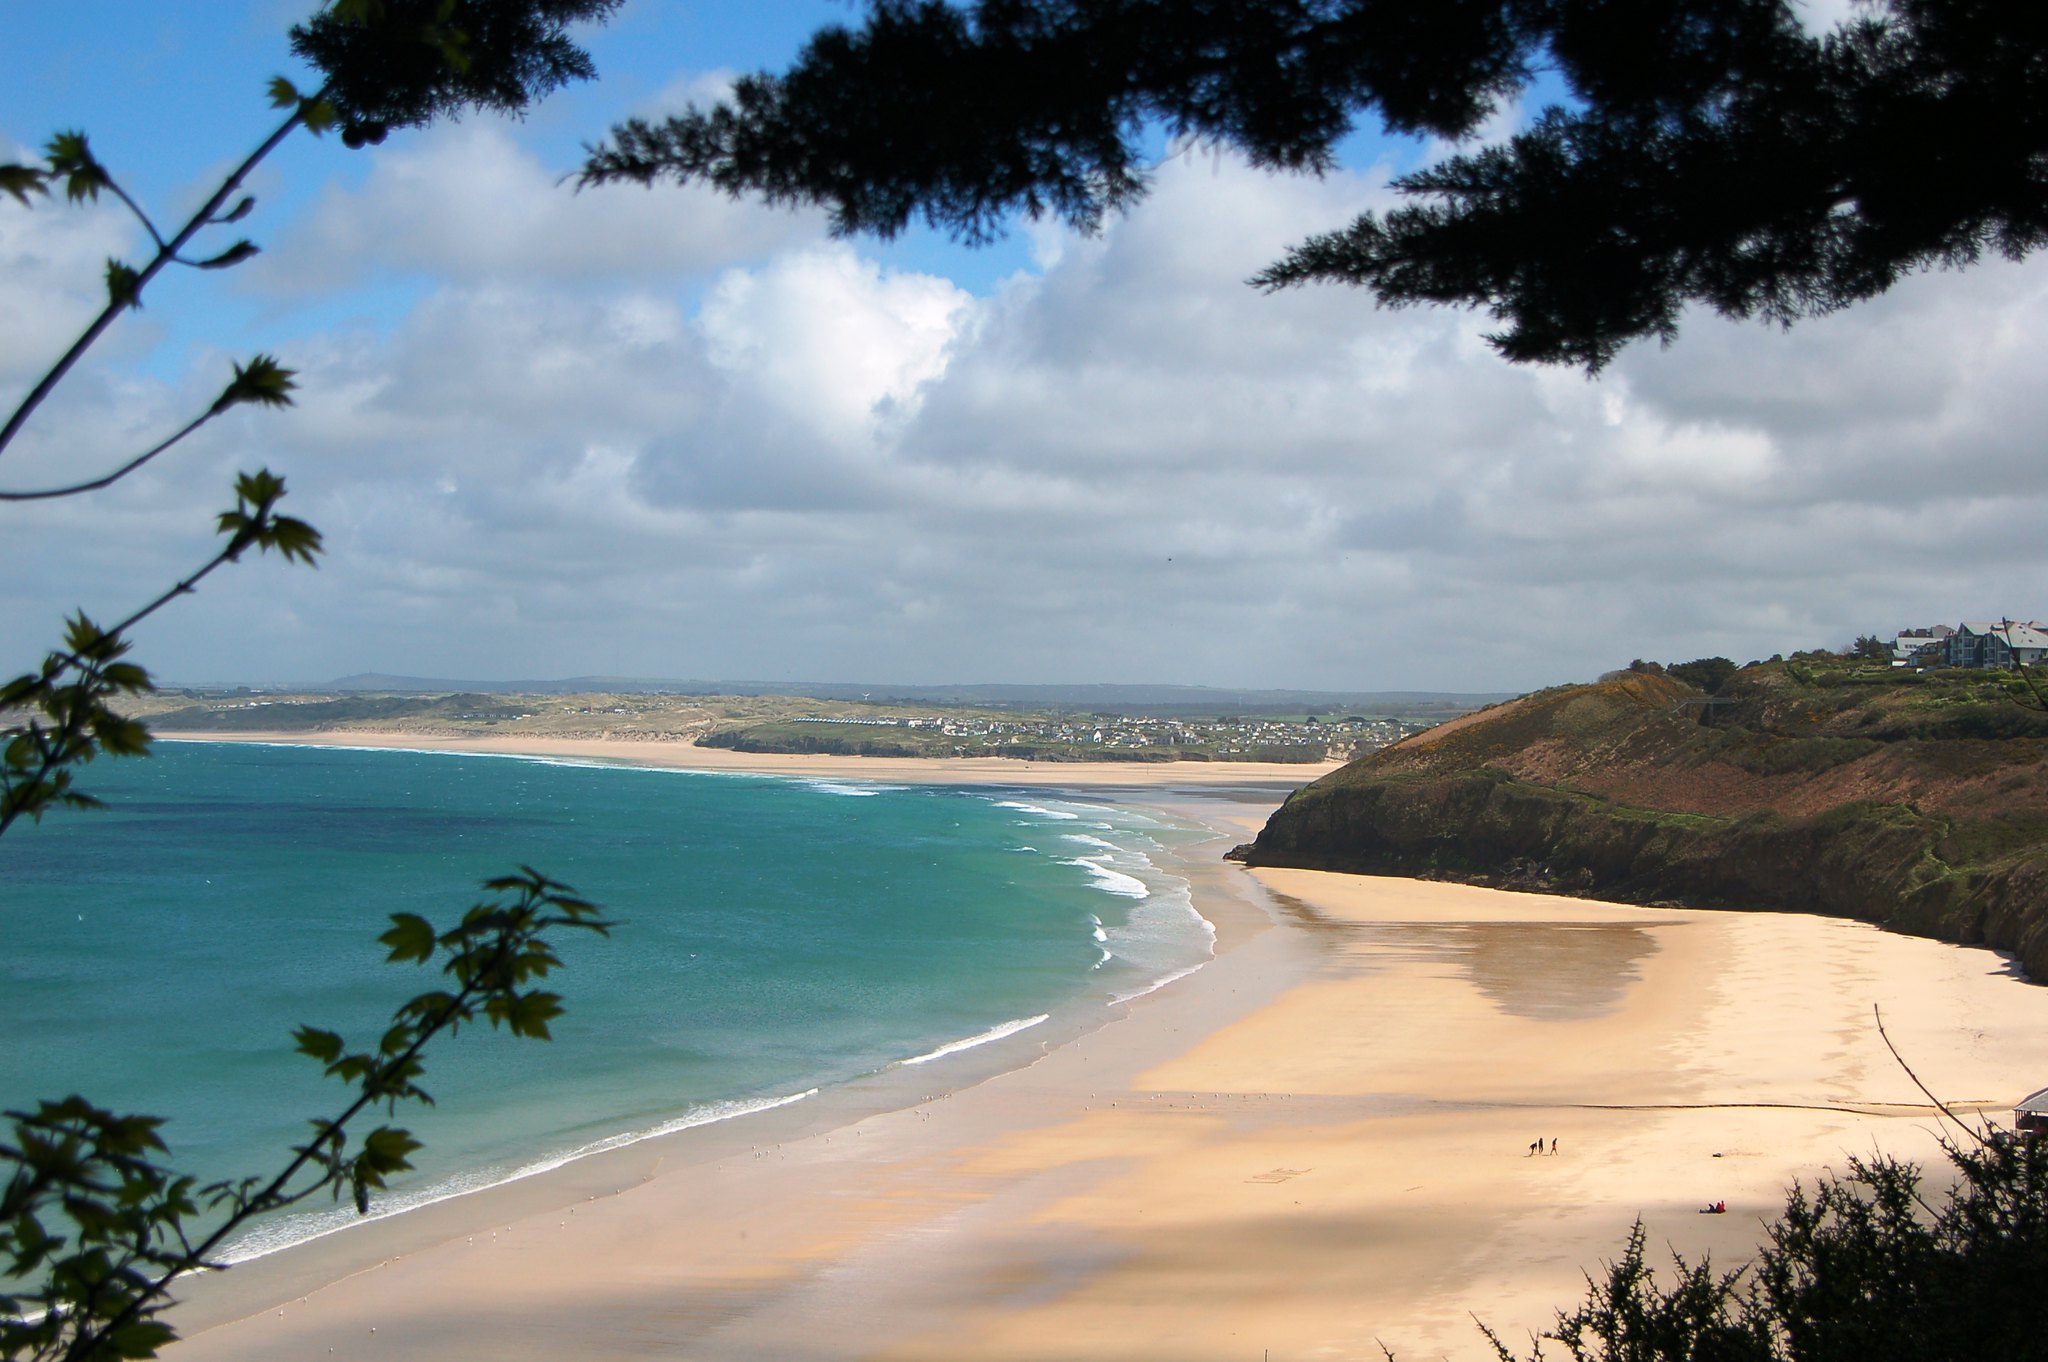 Carbis Bay, #carbis bay, #cornwall, #england, #goldensand, #turquoisewater